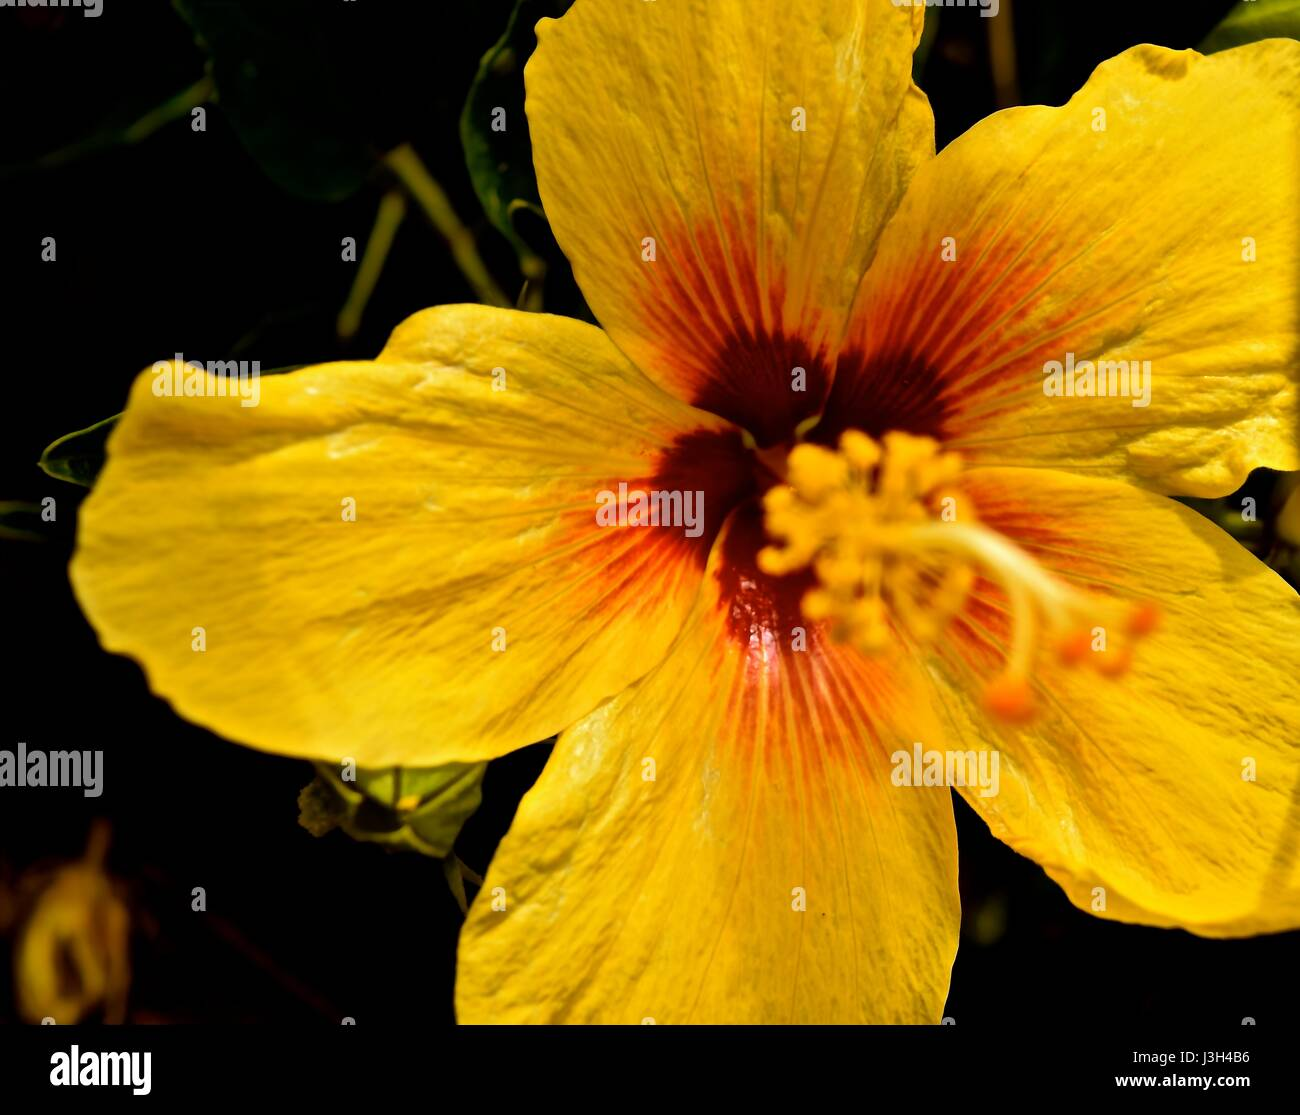 Flower behind ear stock photos flower behind ear stock images alamy close up of the yellow hibiscus traditionally worn by hawaiian girls behind the ear to izmirmasajfo